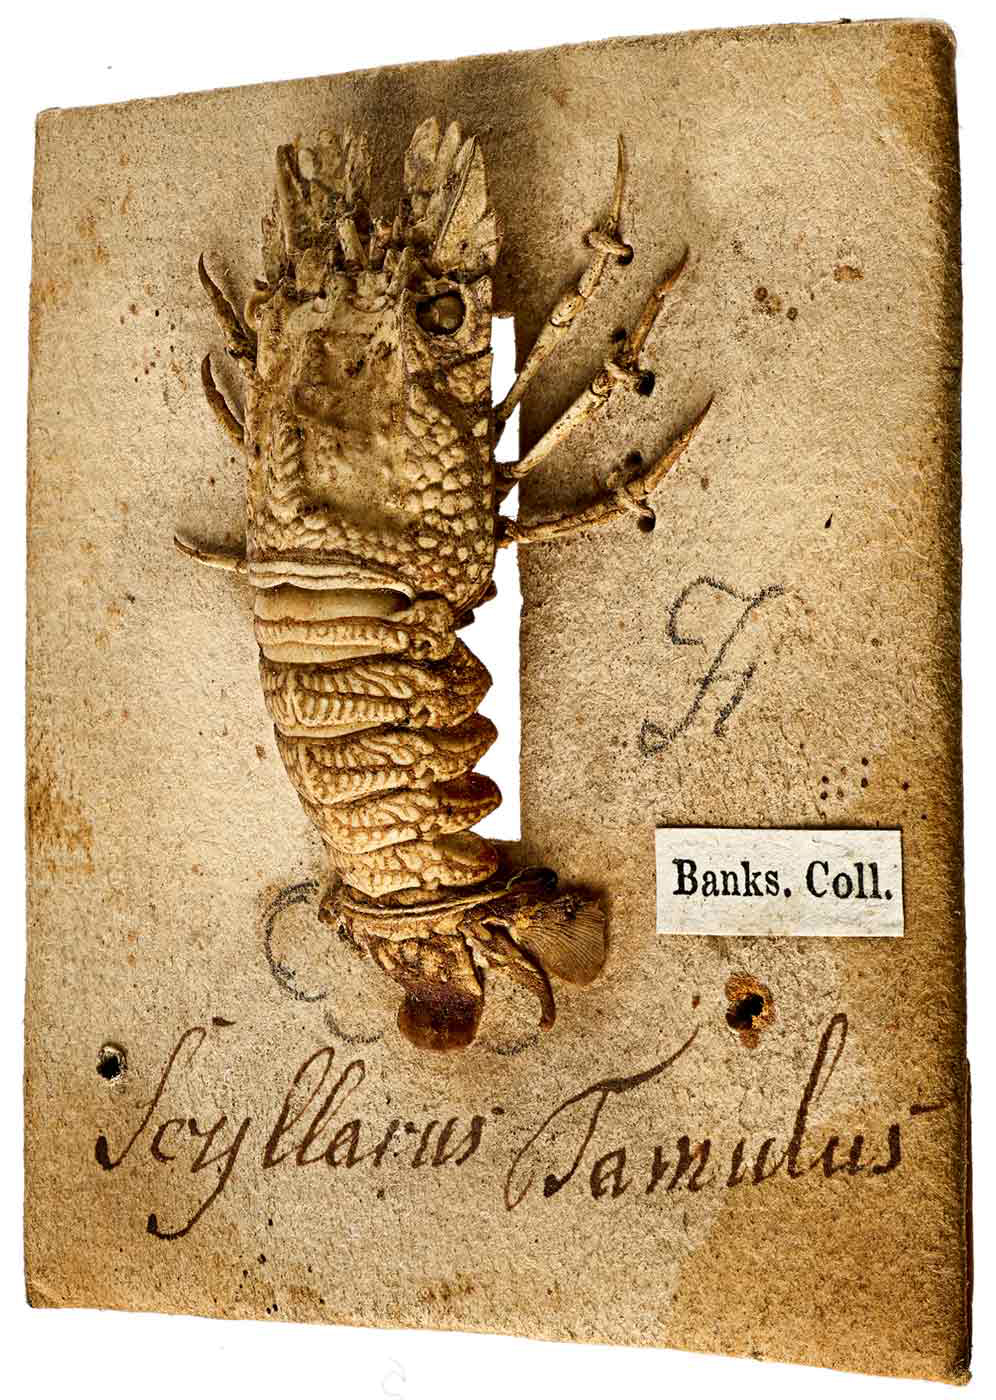 Image of a lobster specimen with a label that reads: 'Banks. Coll'. - click to view larger image